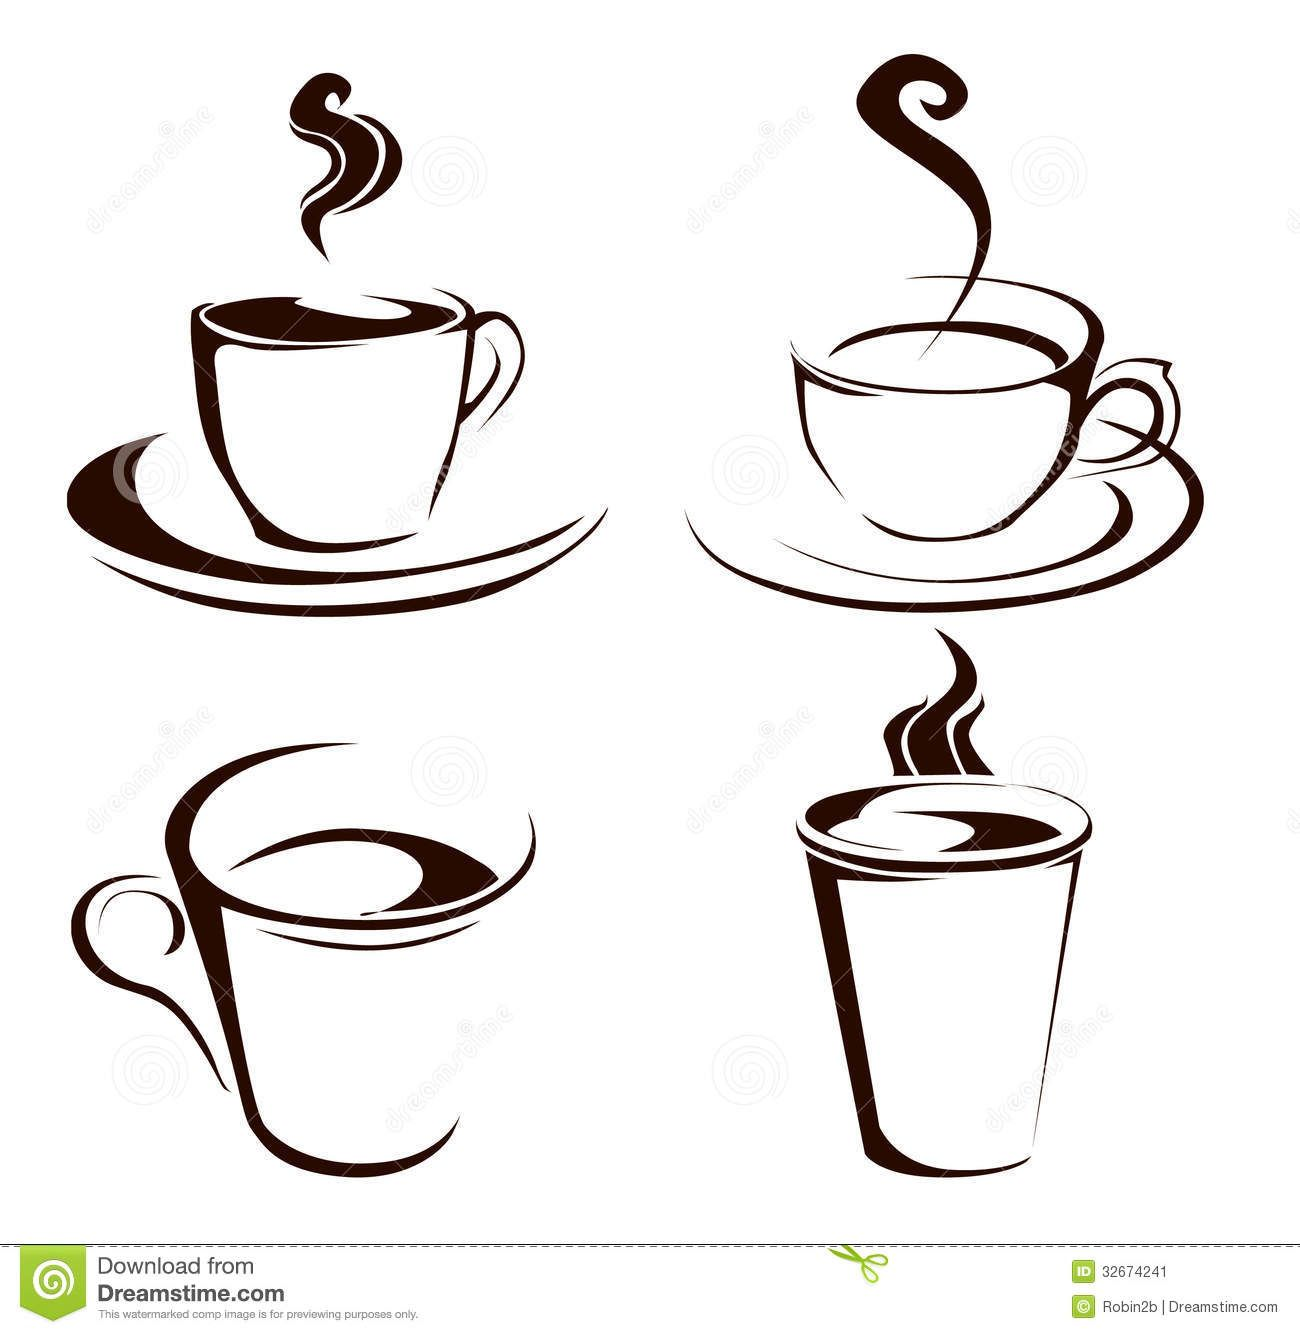 Coffee cup vector free - Coffee Cup Shapes Royalty Free Stock Photos Image 38123908